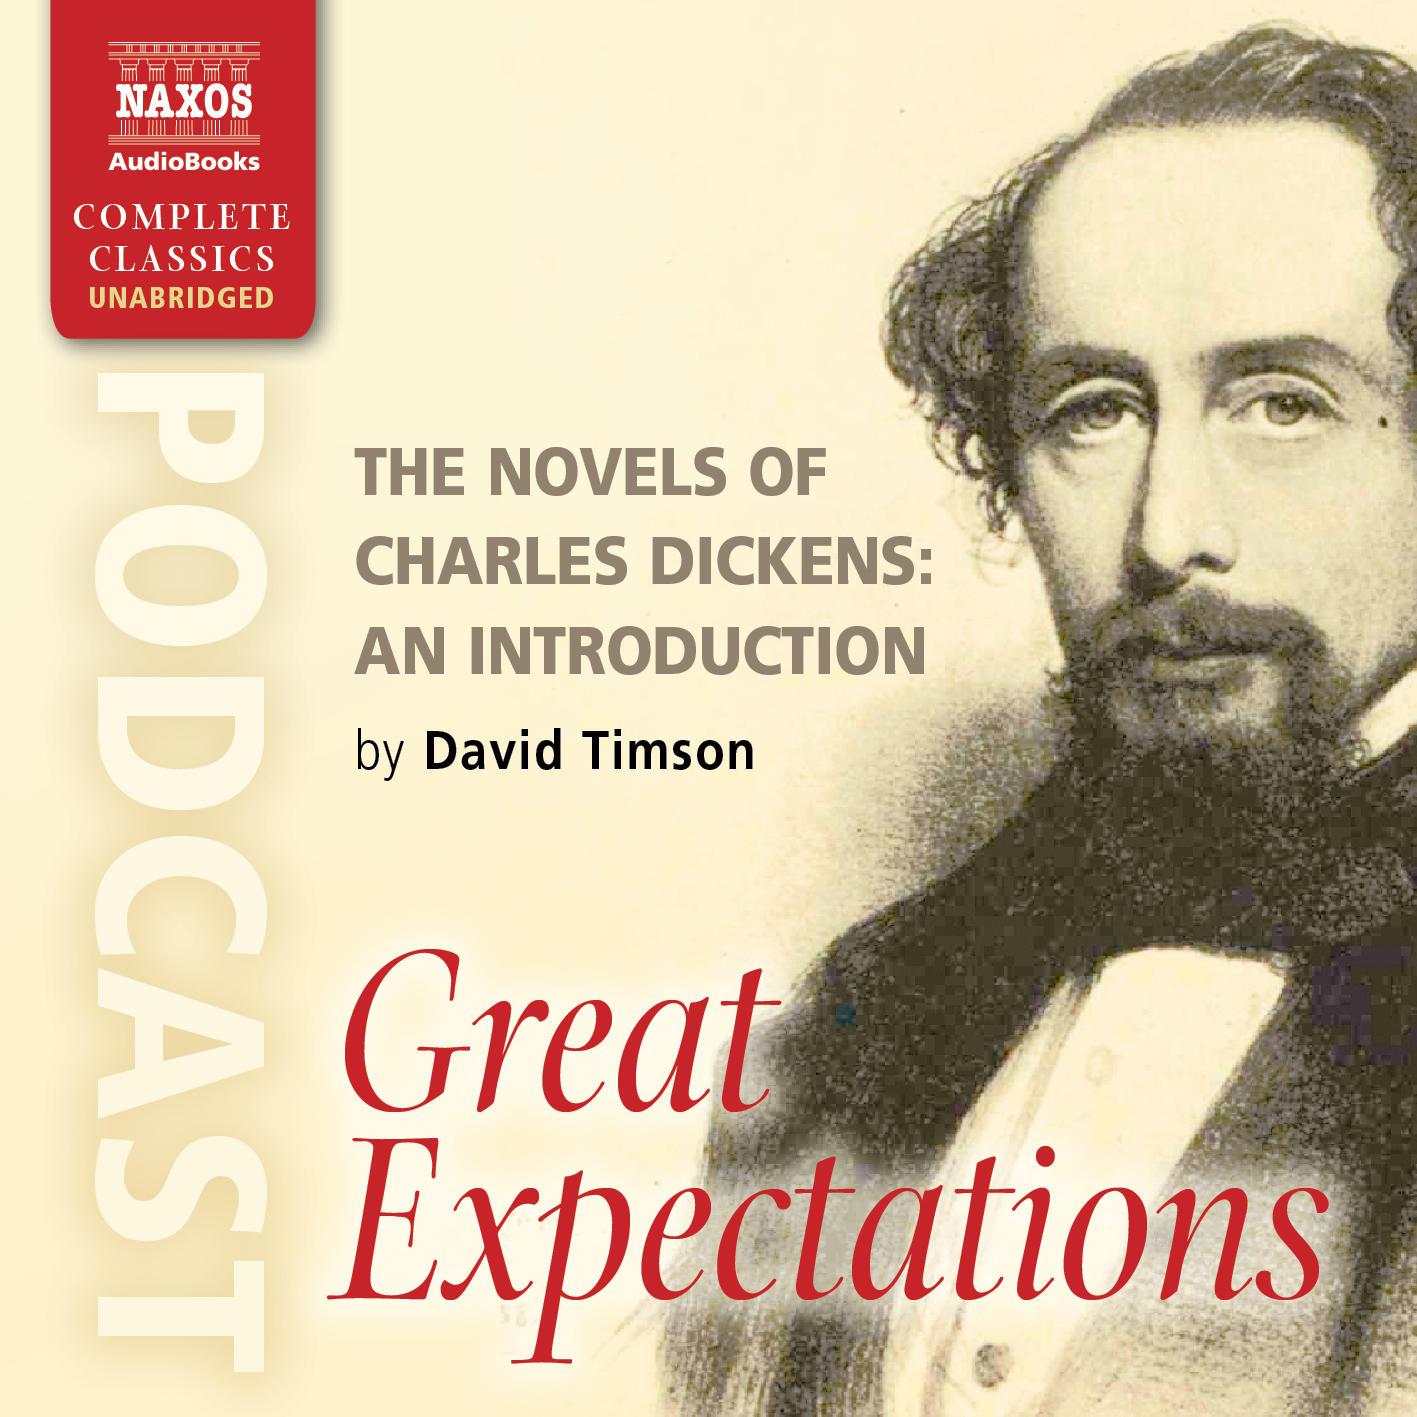 https://naxosaudiobooks.com/wp-content/uploads/2019/08/NA0389_Great_Expectations_Podcast.jpg